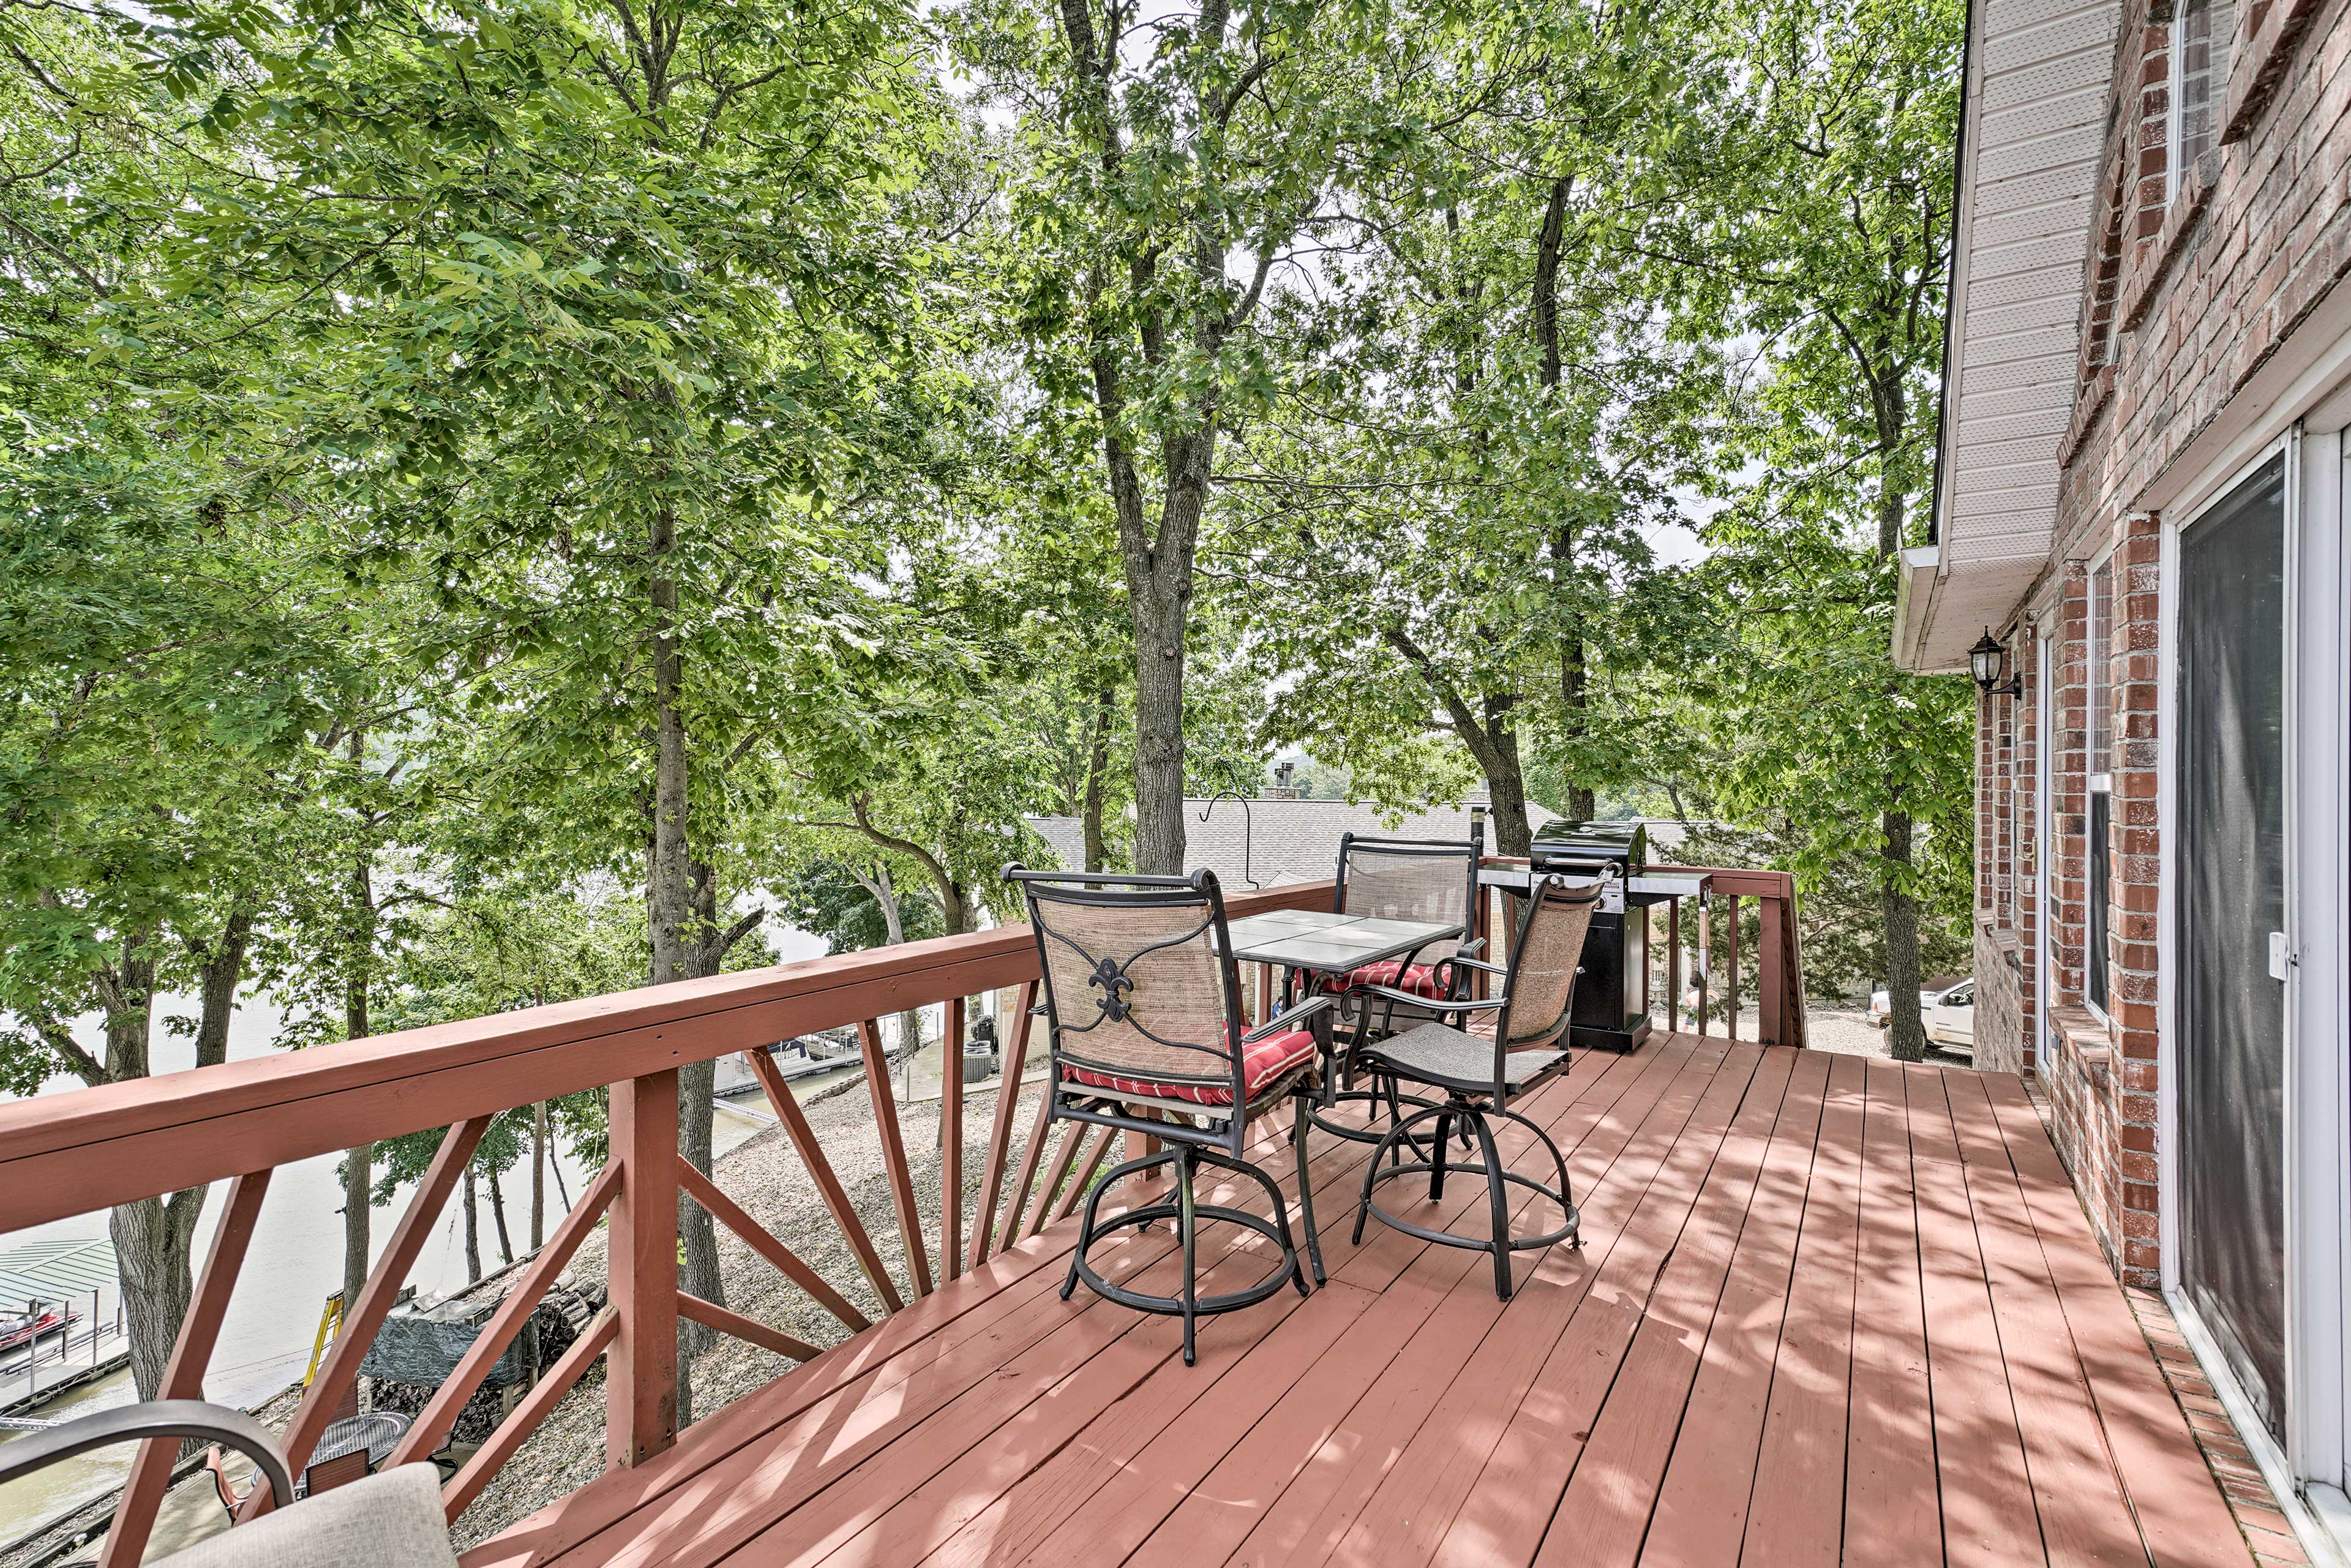 Sip morning coffee and evening nightcaps on the shaded deck.